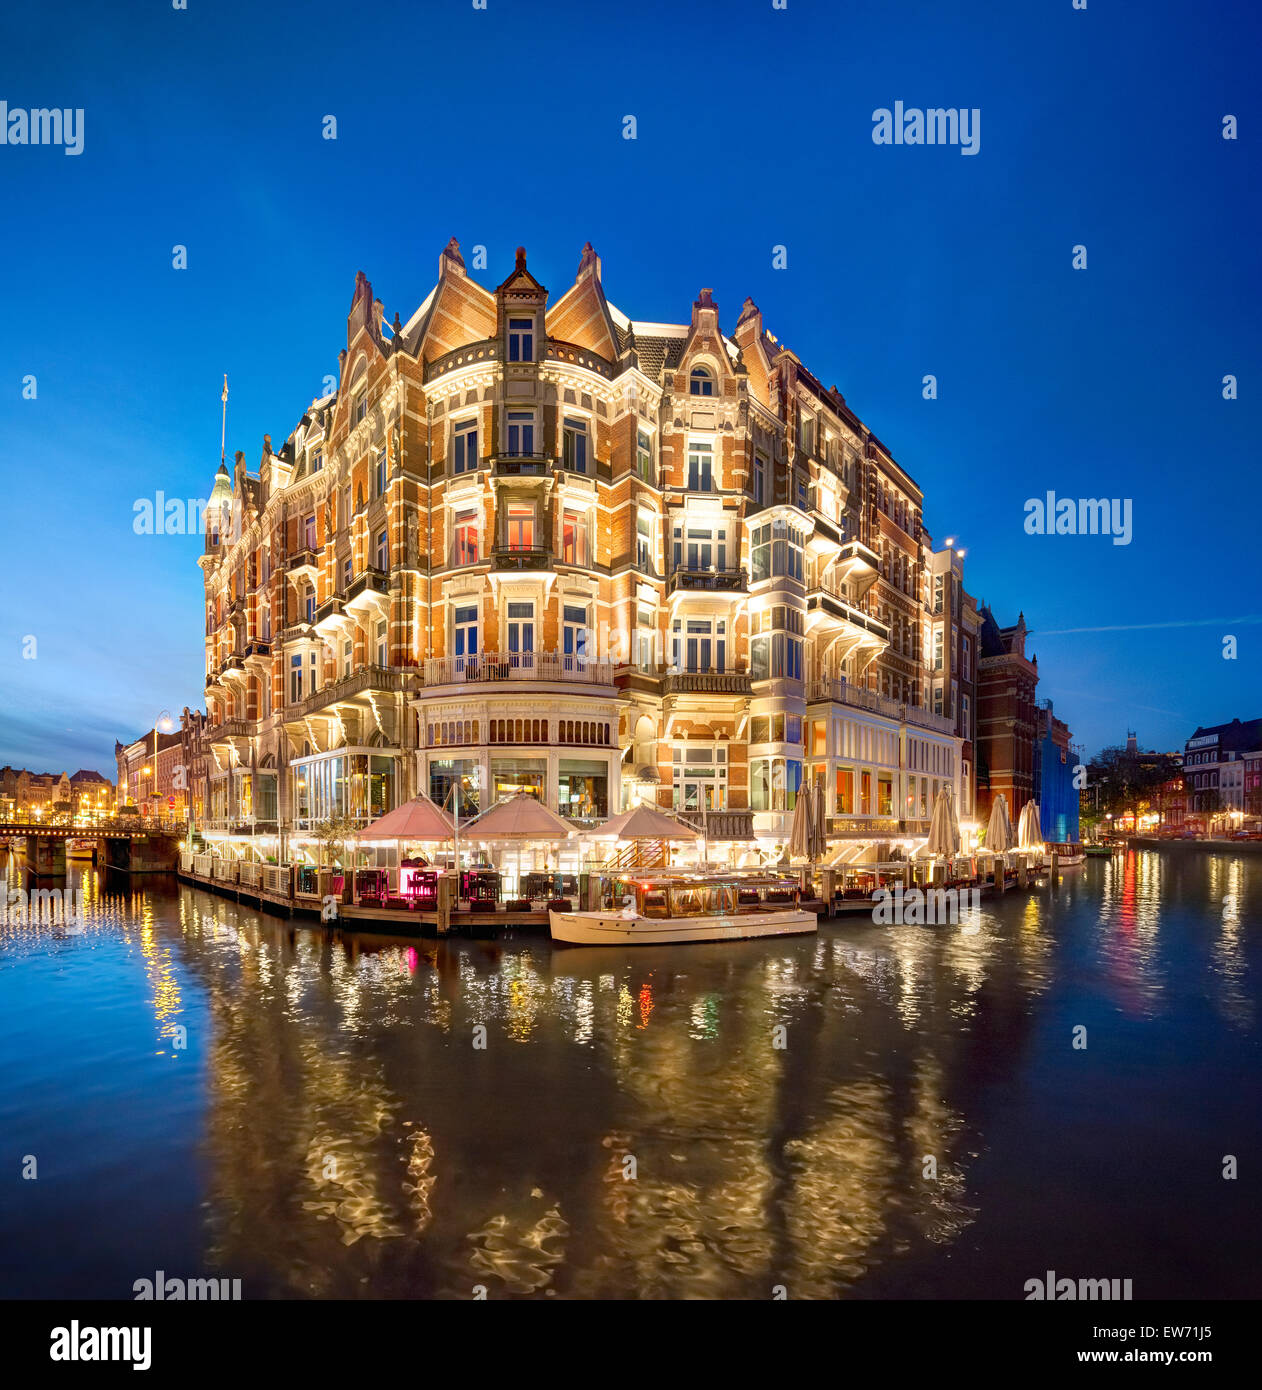 Amsterdam Hotel De l'Europe on corner of Amstel River and Rokin canal. Historic five star hotel in romantic - Stock Image